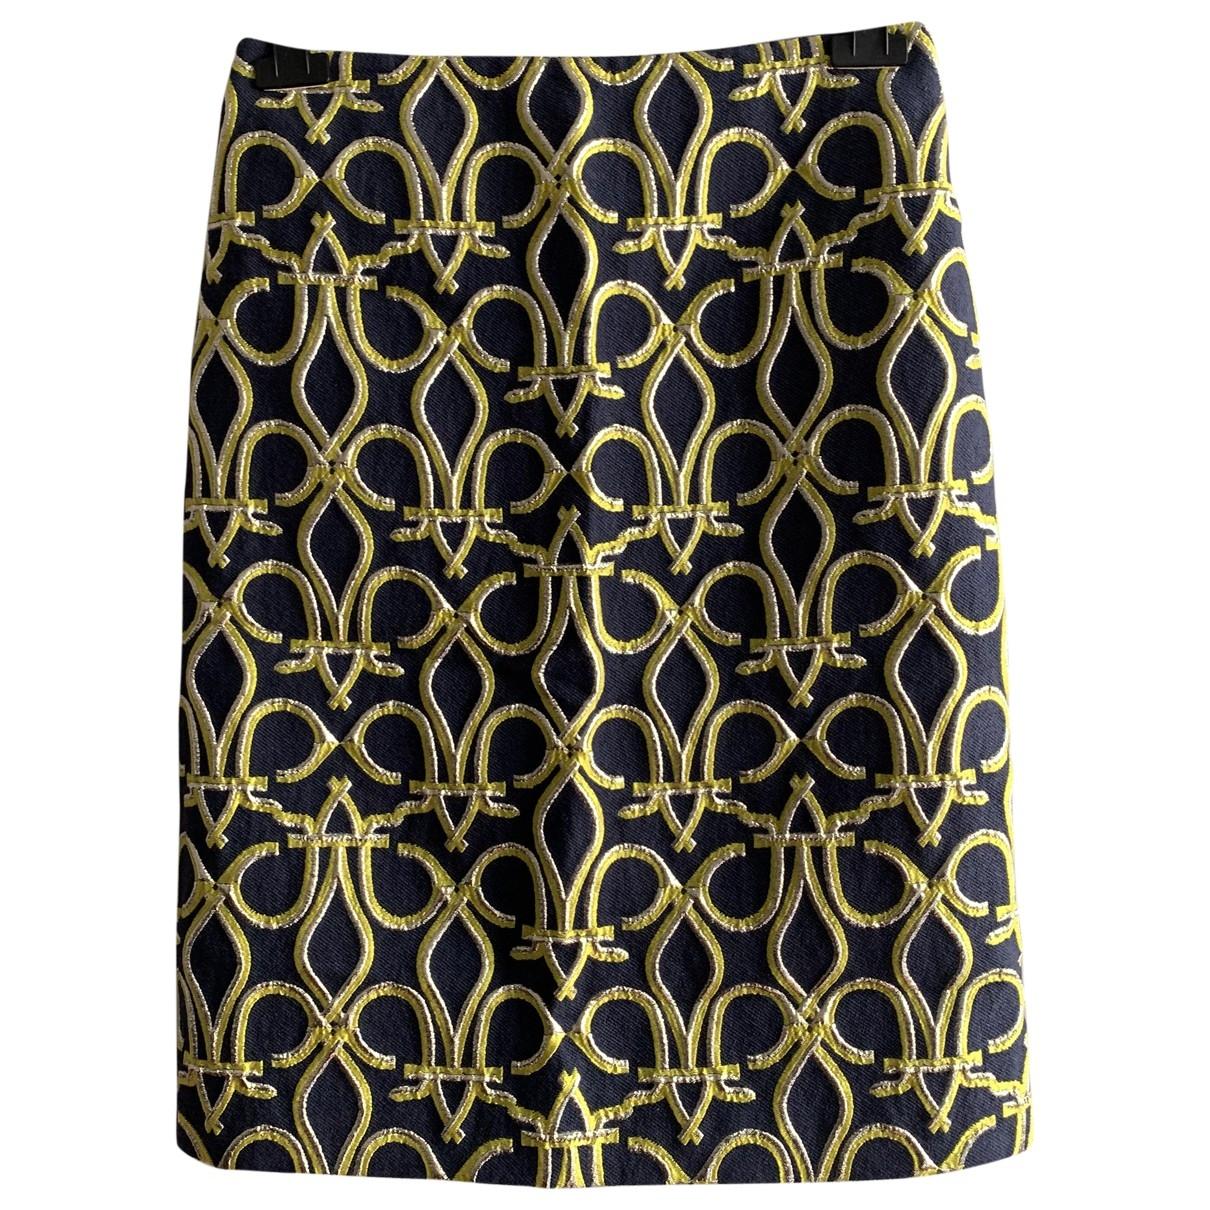 Emilio Pucci \N Navy skirt for Women 40 IT